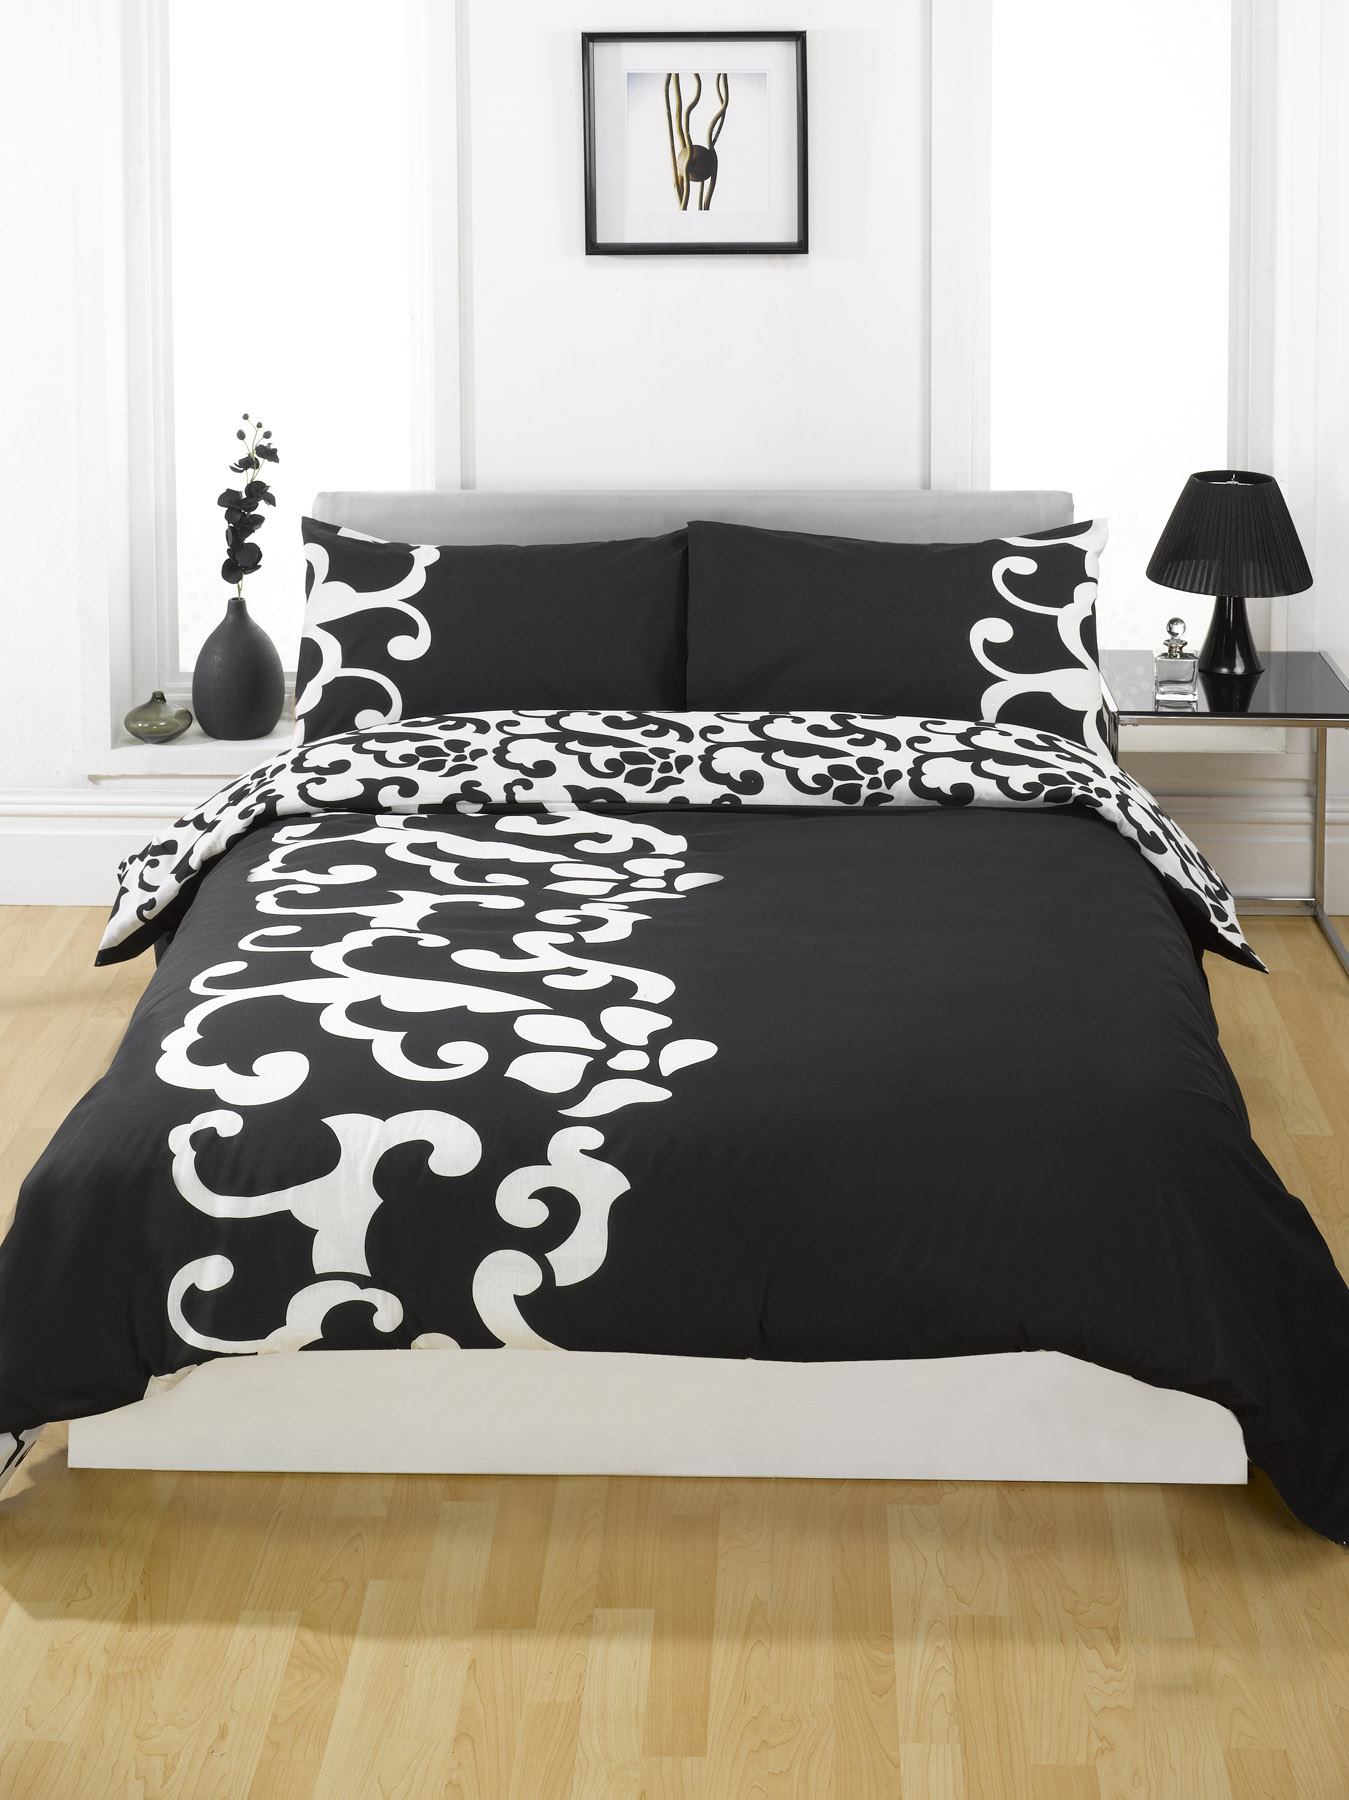 King Bedding Duvet Cover Set White Black Marble, 3 piece - -TC Luxury Hypoallergenic Microfiber Down Comforter Quilt Covers with Zipper Closure, Ties - Best Organic Modern Style for Men and Women. by NANKO. $ $ 34 99 Prime. FREE Shipping on eligible orders. out of 5 stars